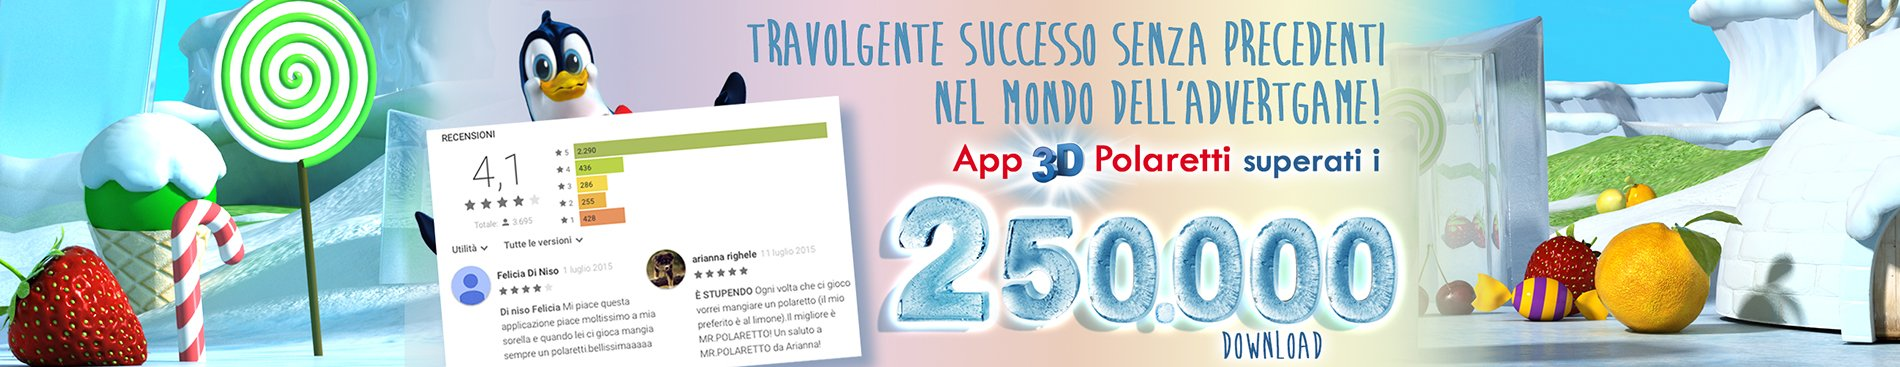 250.000 download App Polaretti